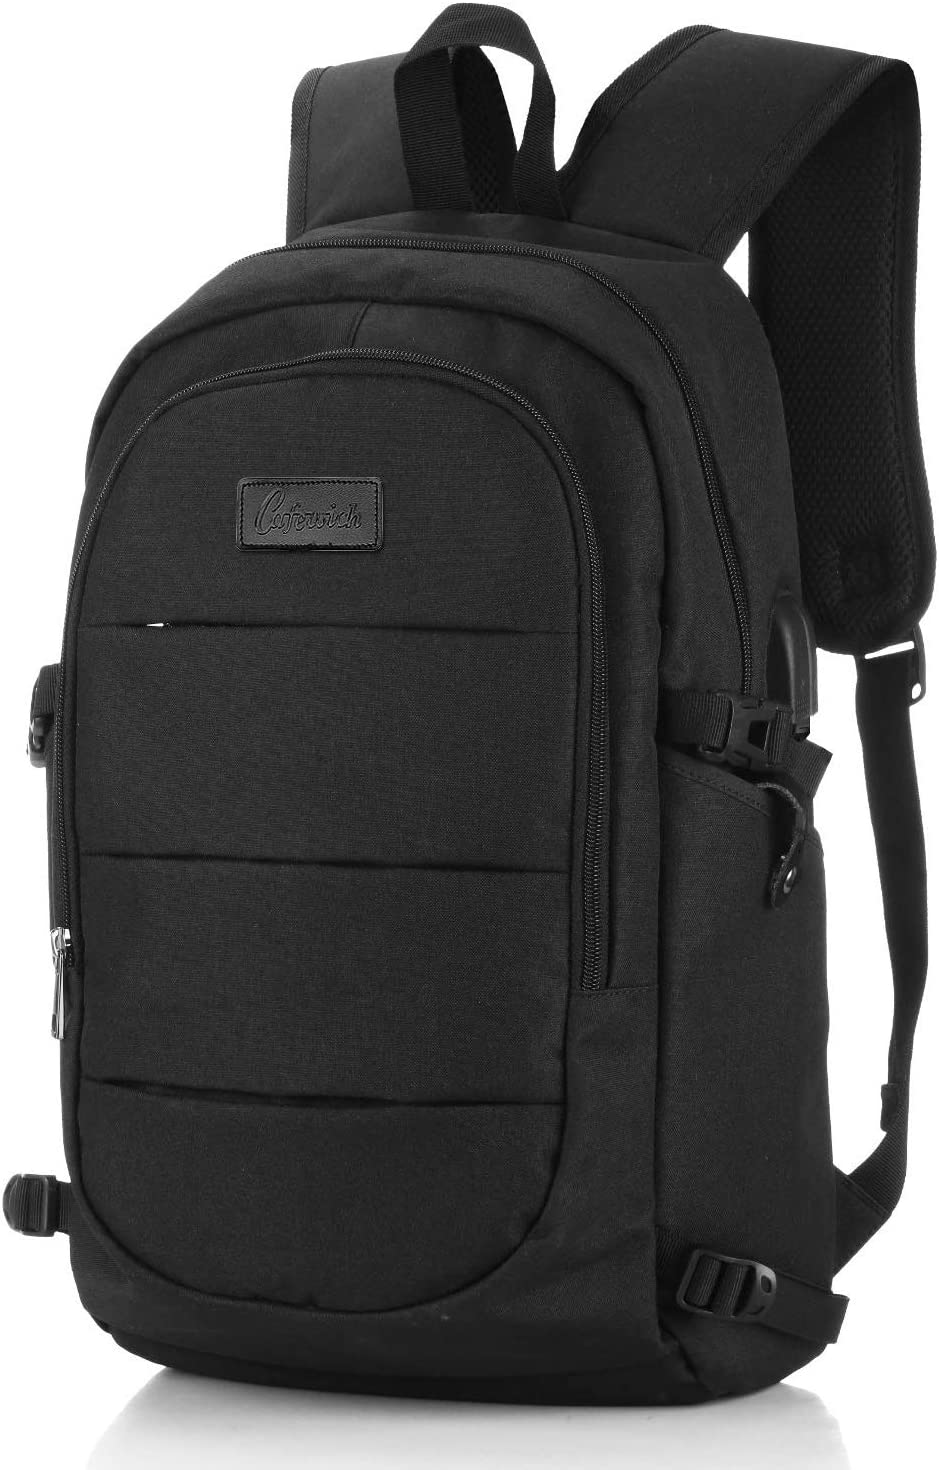 Laptop Backpack Business with USB Charging Port Computer Bag Student Bag for Women Men 15.6In-Black